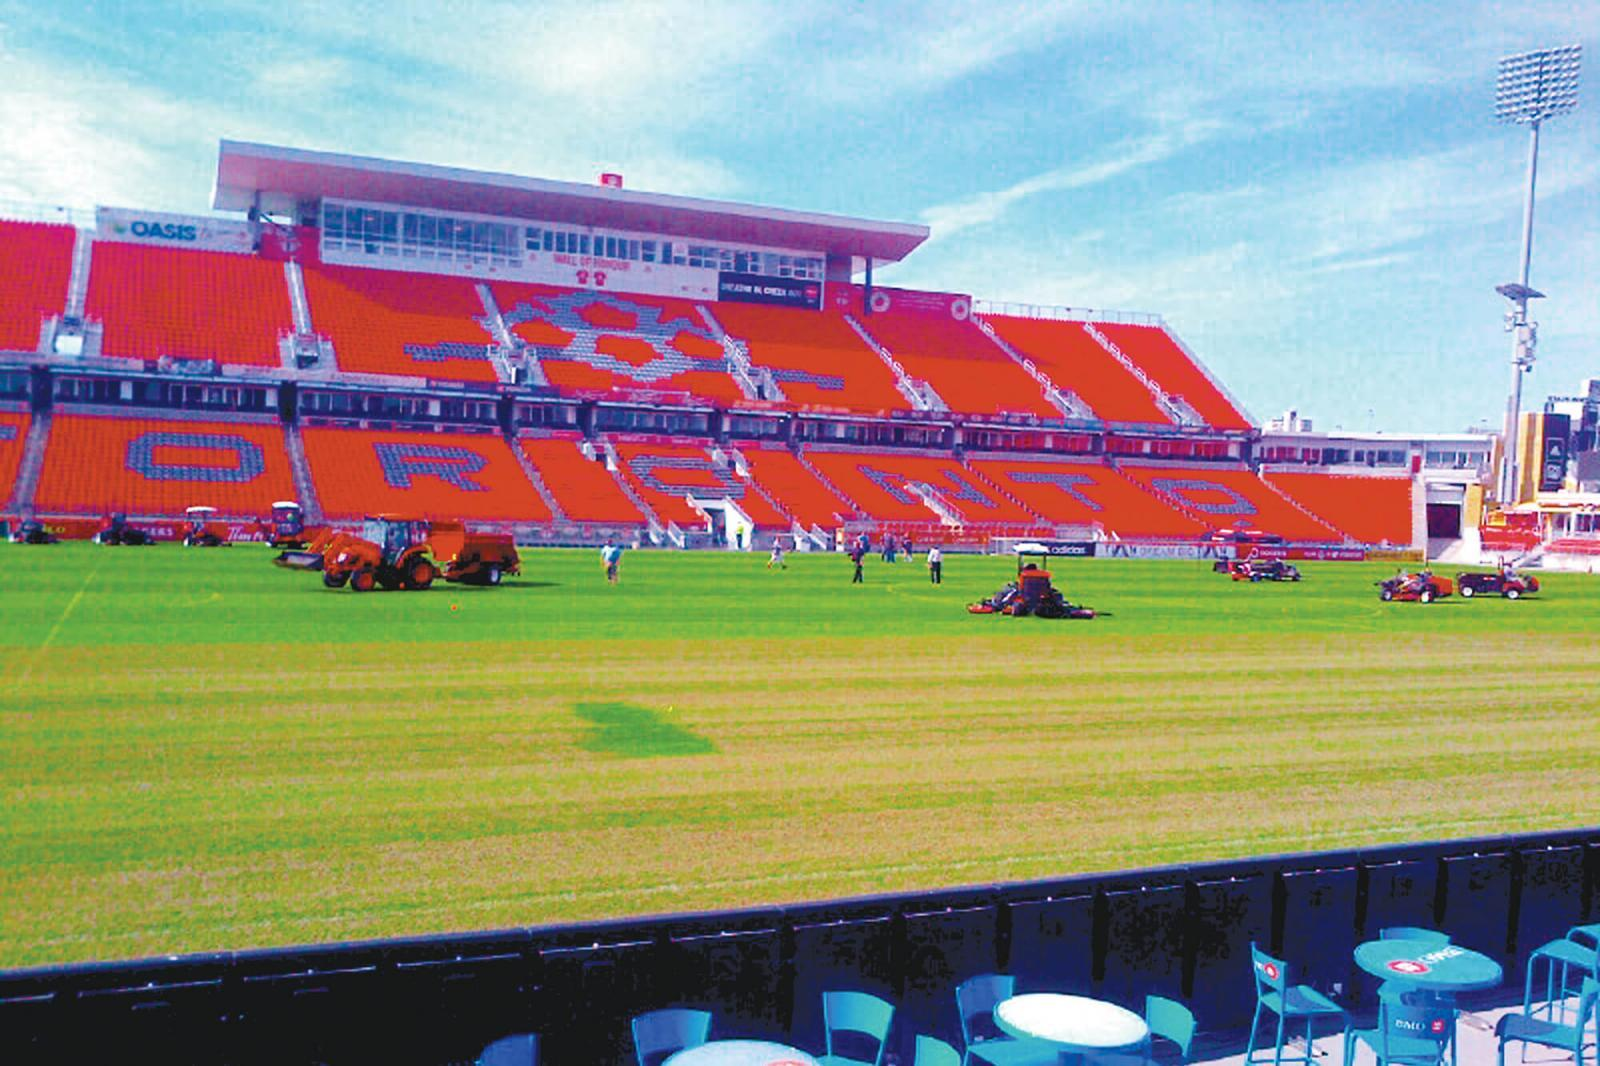 Turf Care holds second event at BMO Field